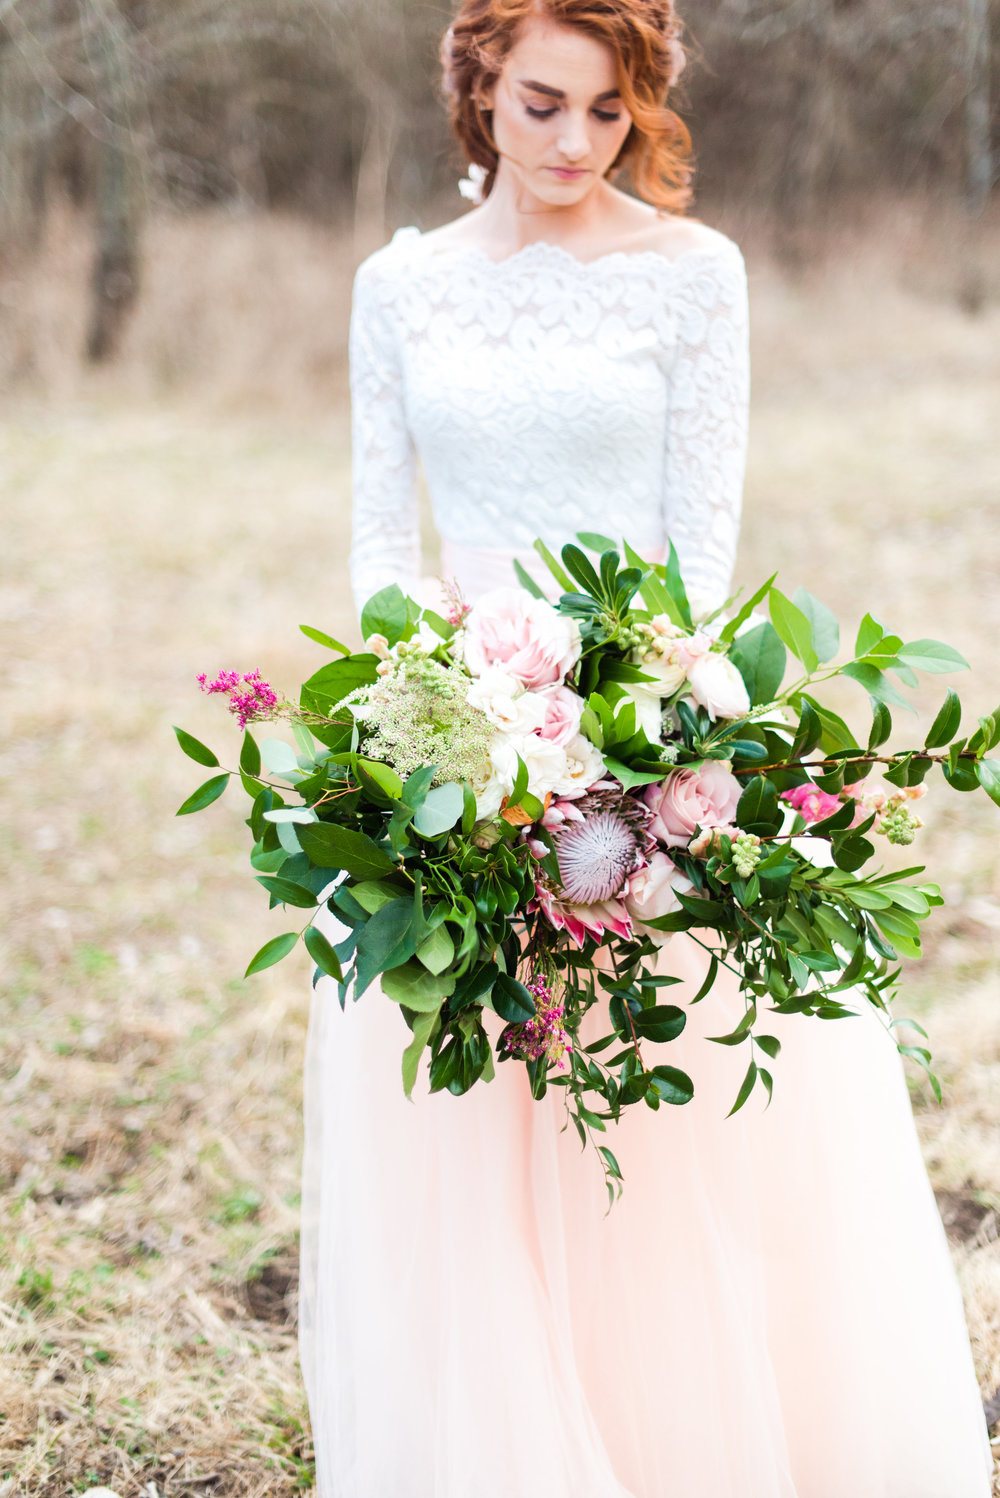 Large Wild Greenery Focused Bouquet  Style: boho, woodland, organic Details: Large King Protea, full greenery   {Photo courtesy of  Lacey Rene Studios }